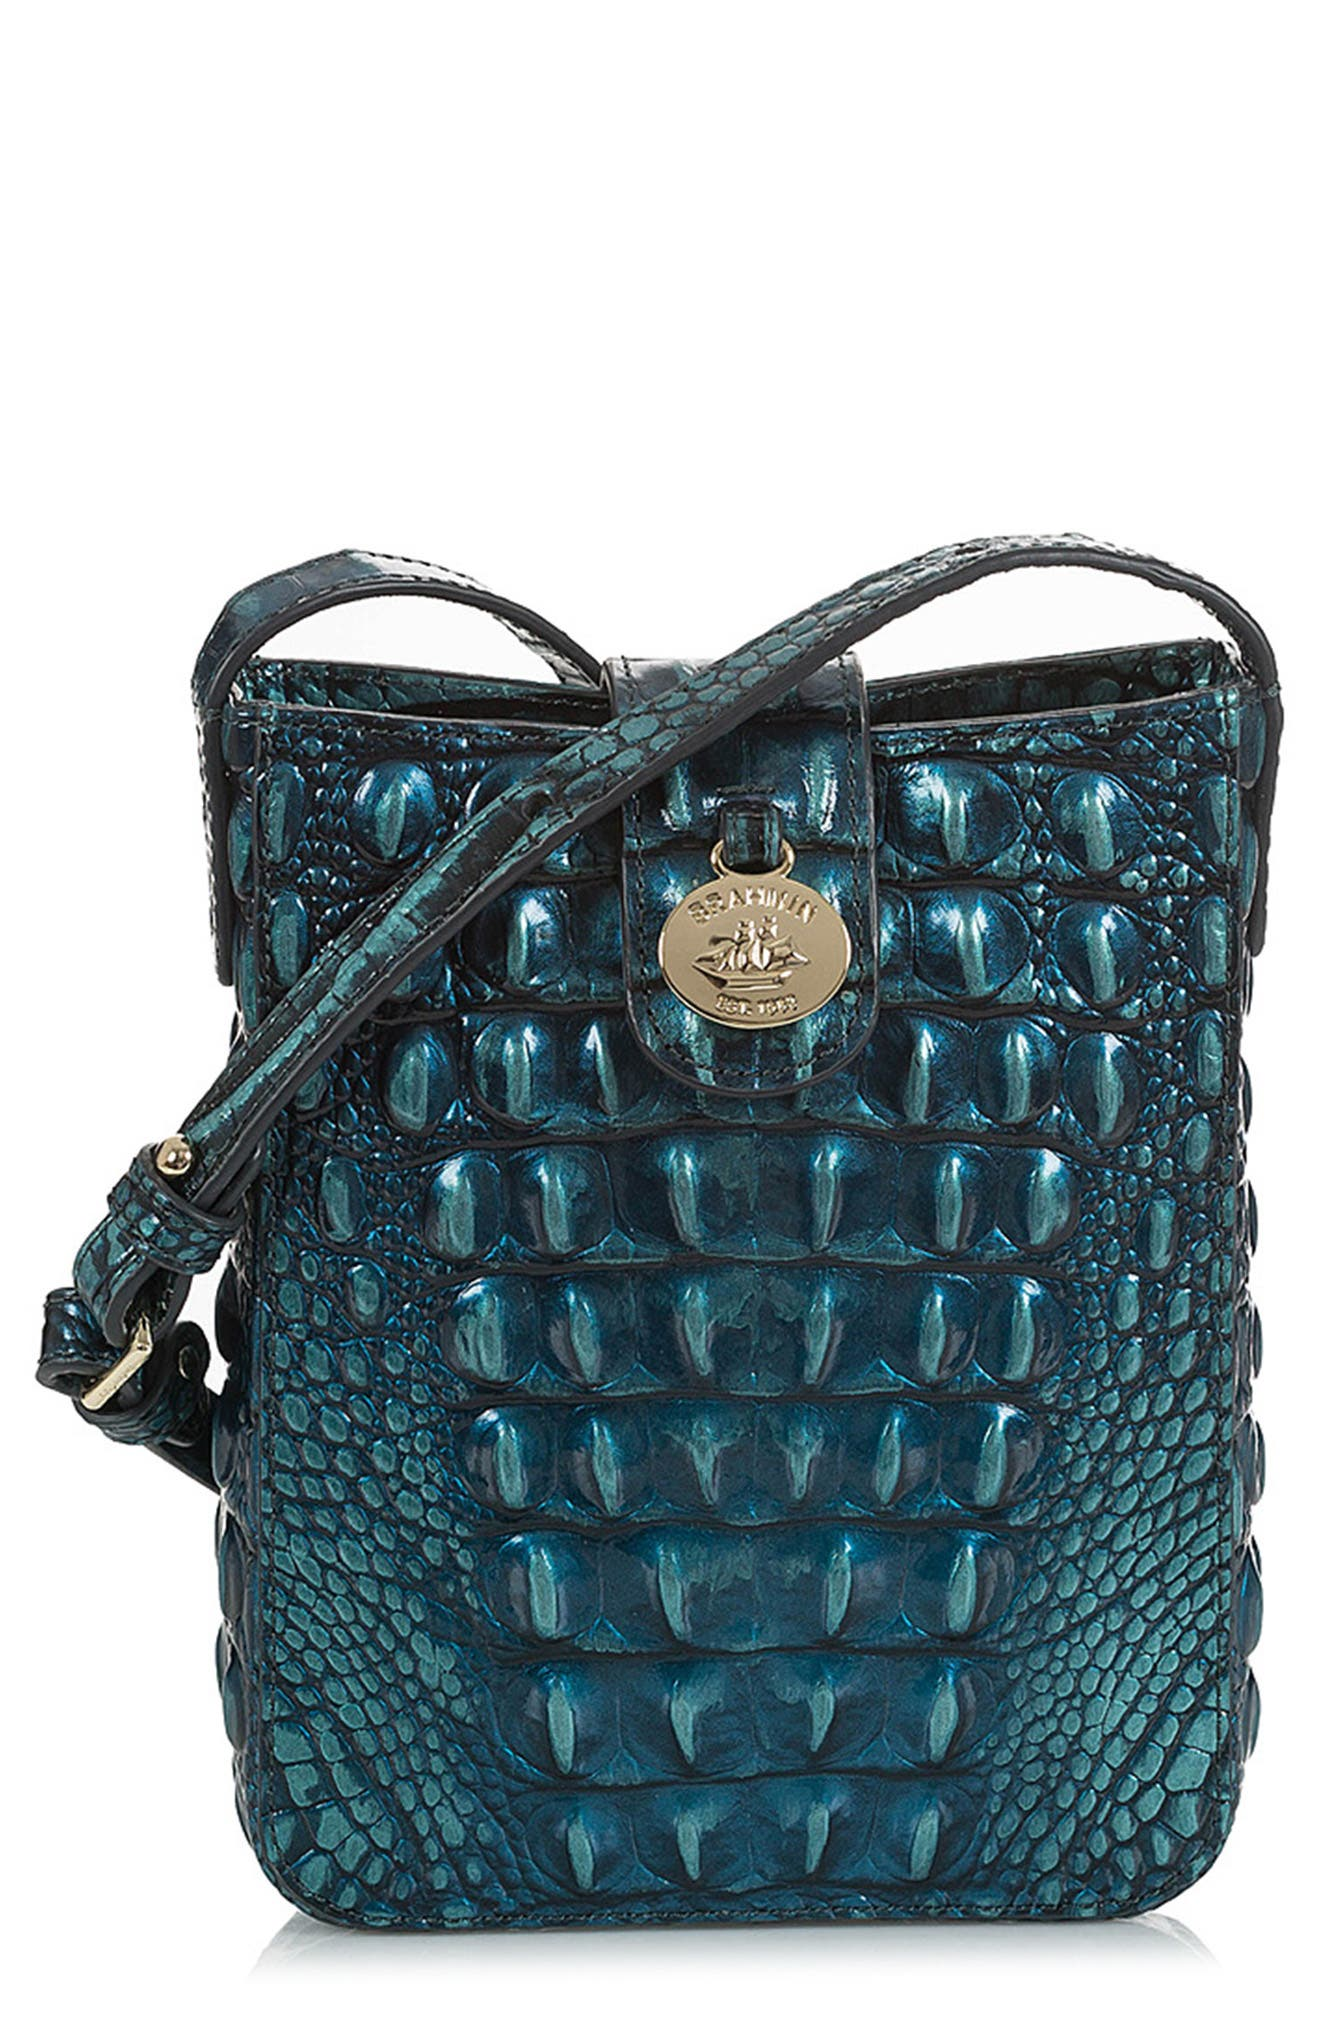 Marley Croc Embossed Leather Crossbody Bag,                             Main thumbnail 1, color,                             VERDIGRIS